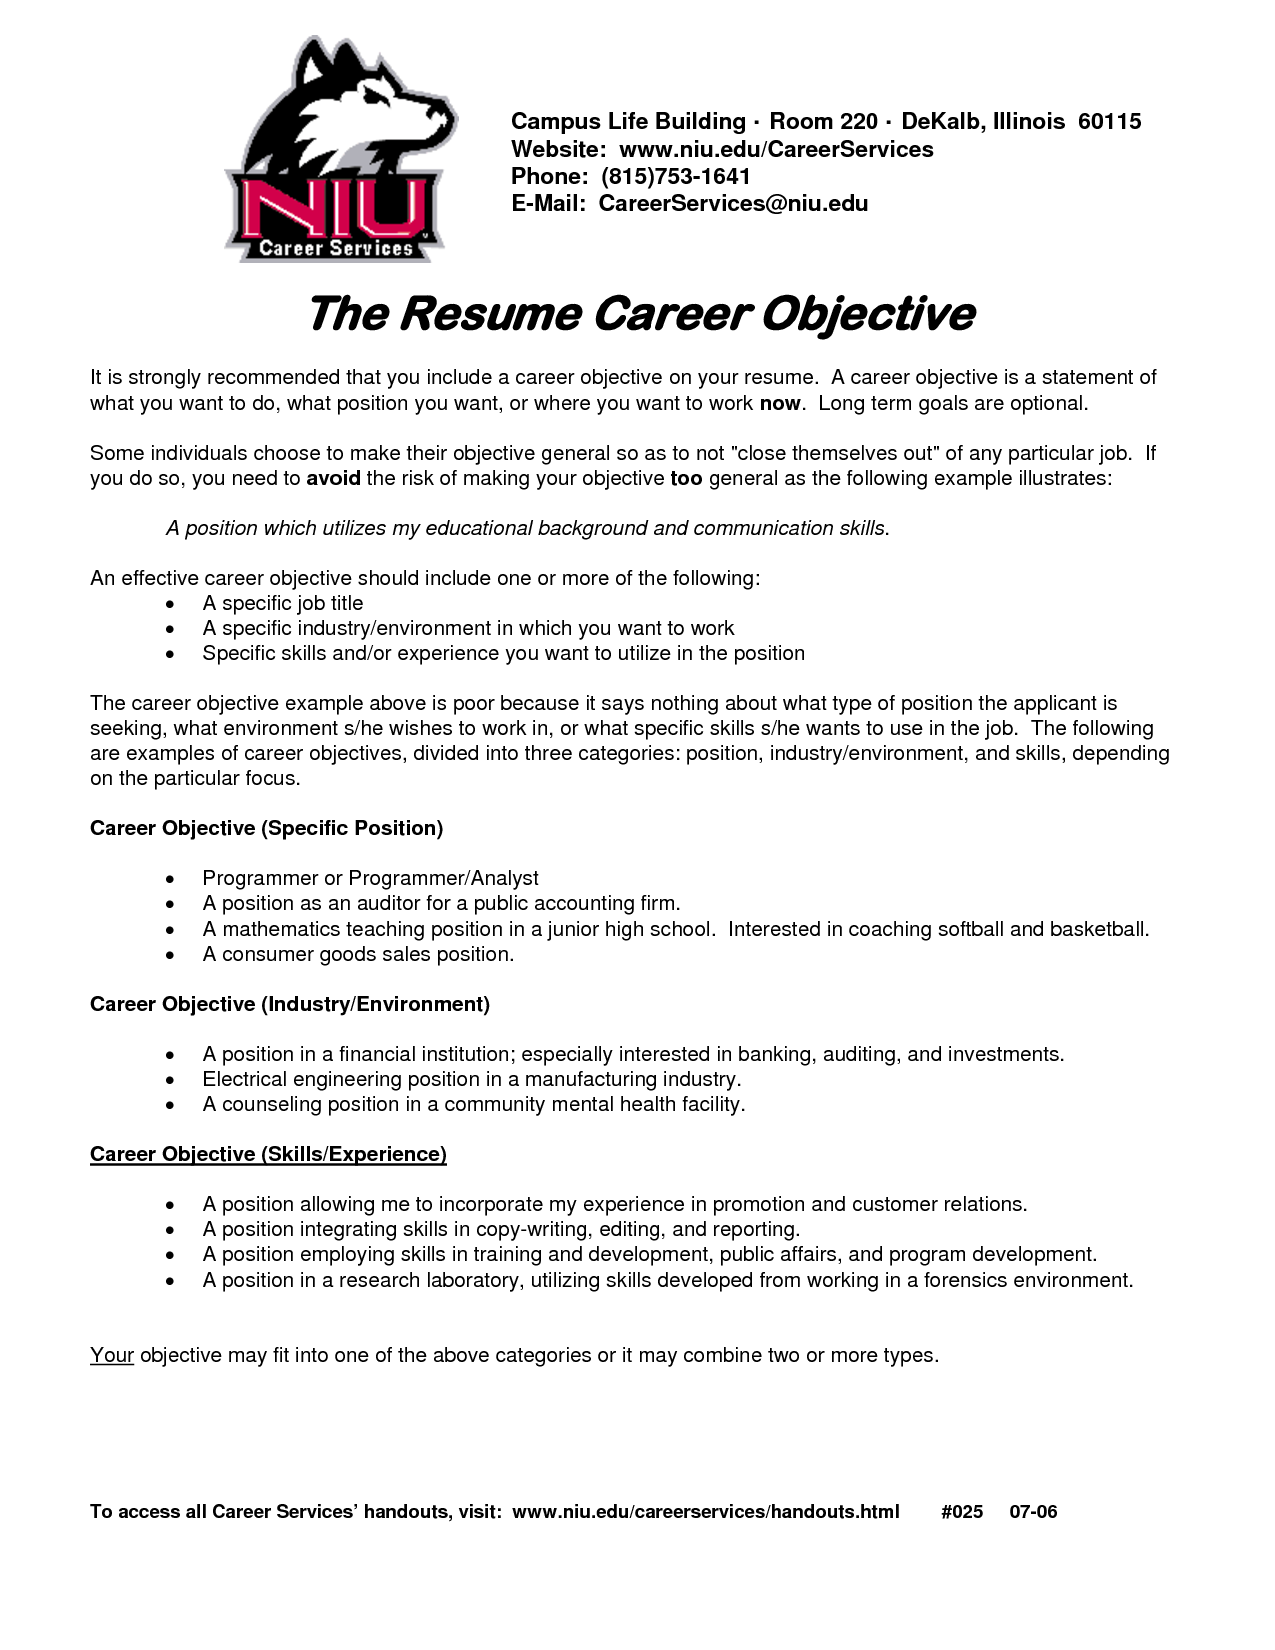 Best Resume Objectives Amusing Httpswwwgooglesearchqobjective Resume  Resume Design Inspiration